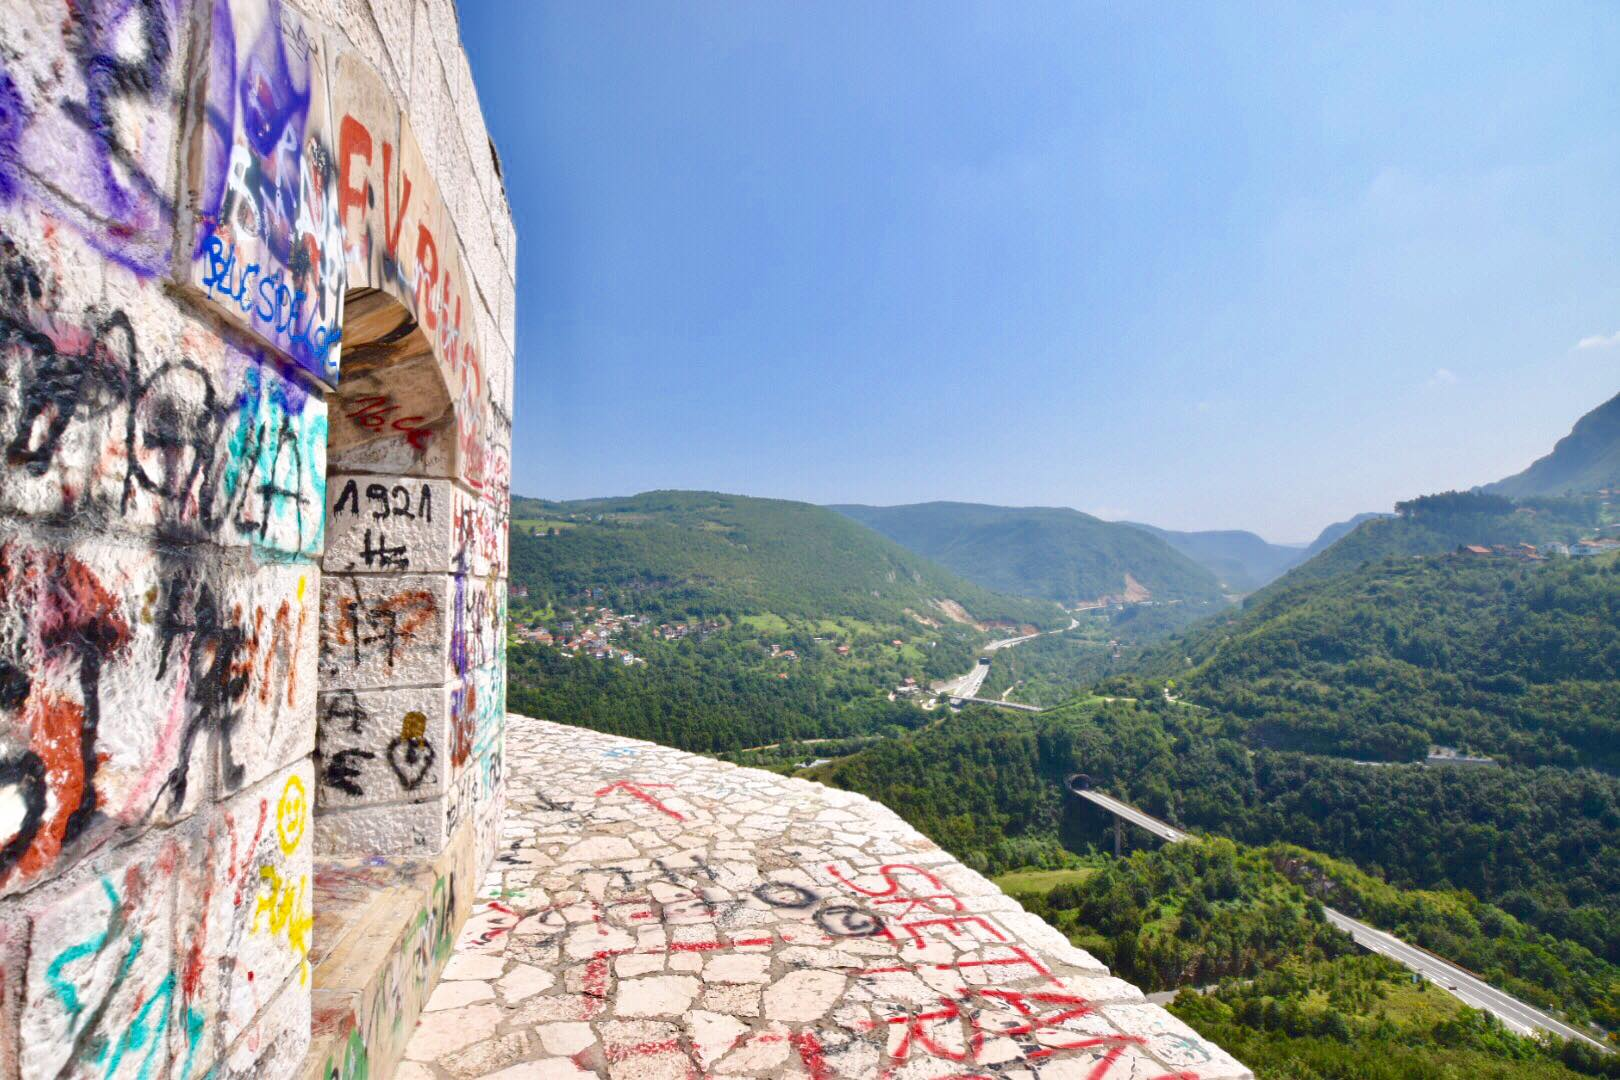 Kach Solo Travels Day 12 to 16: 5 Days in Bosnia & Herzegovina is not enough!